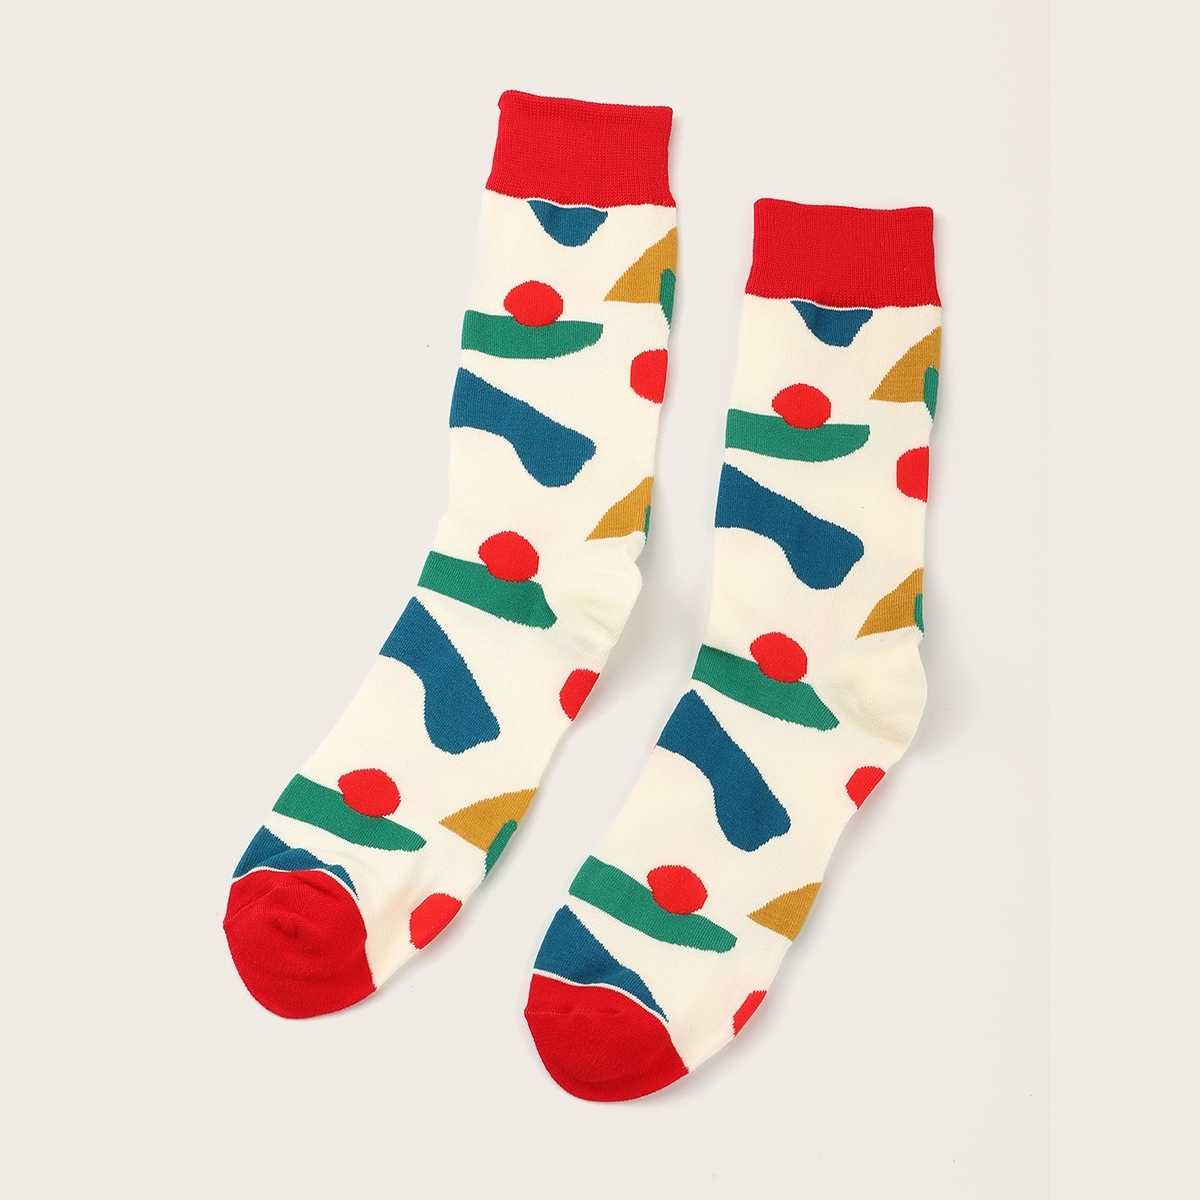 Guys Color Block Socks 1pair in Multicolor by ROMWE on GOOFASH